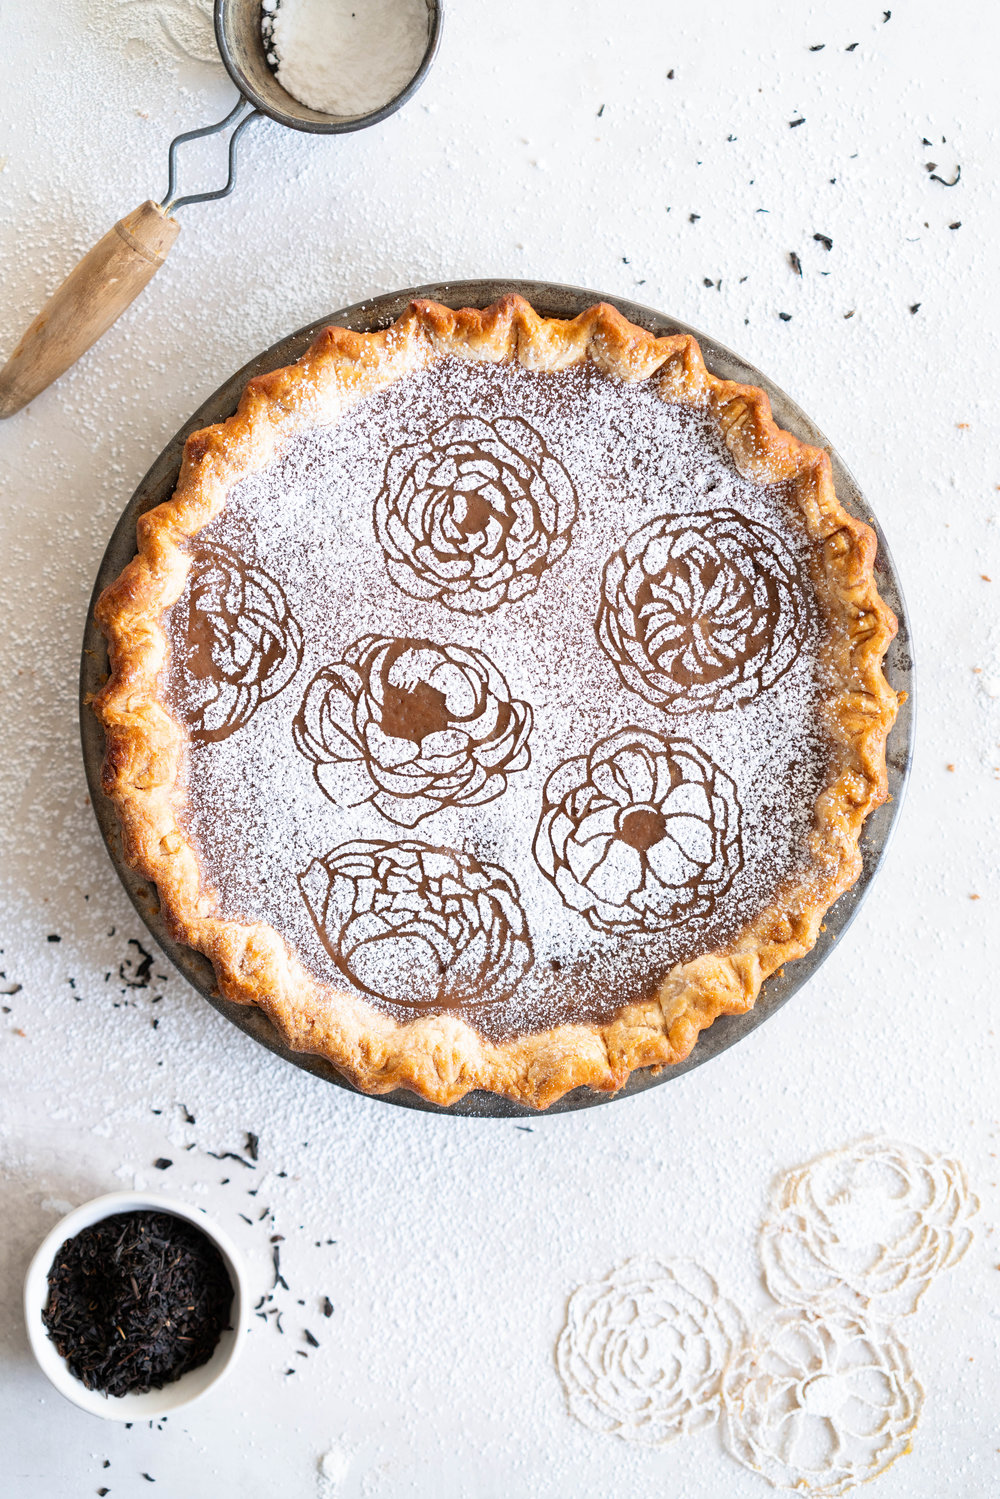 Earl Grey Sugar Pie - Fragrant Earl grey custard is spiked with vanilla bean, and finished with a hefty dusting of powdered sugar. An egg free version of a custard favourite that bakes perfectly flat and will never crack on you.